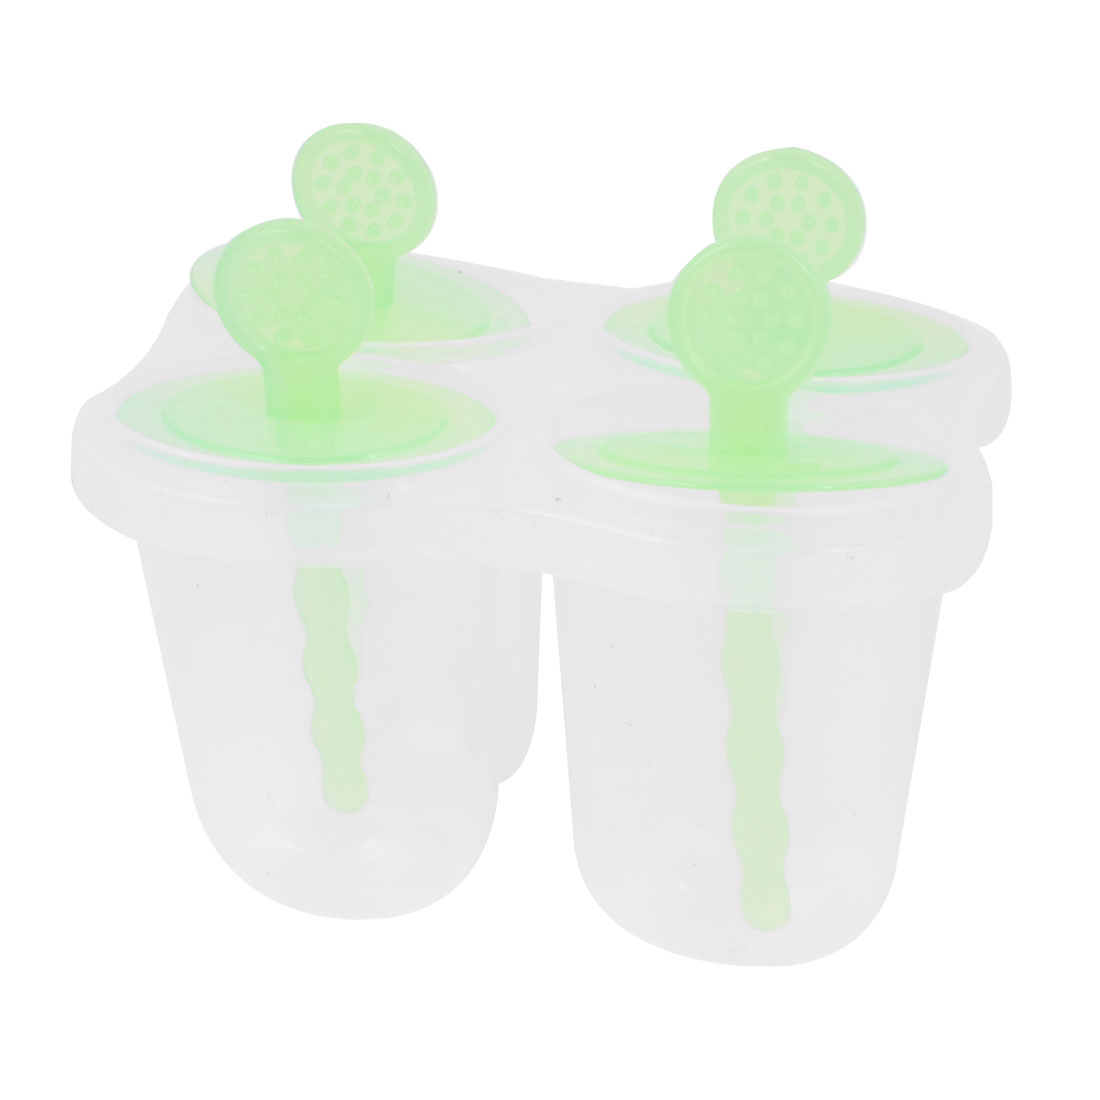 Green 4 Compartments Plastic DIY Candy Bar Maker Ice Cube Mold Mould